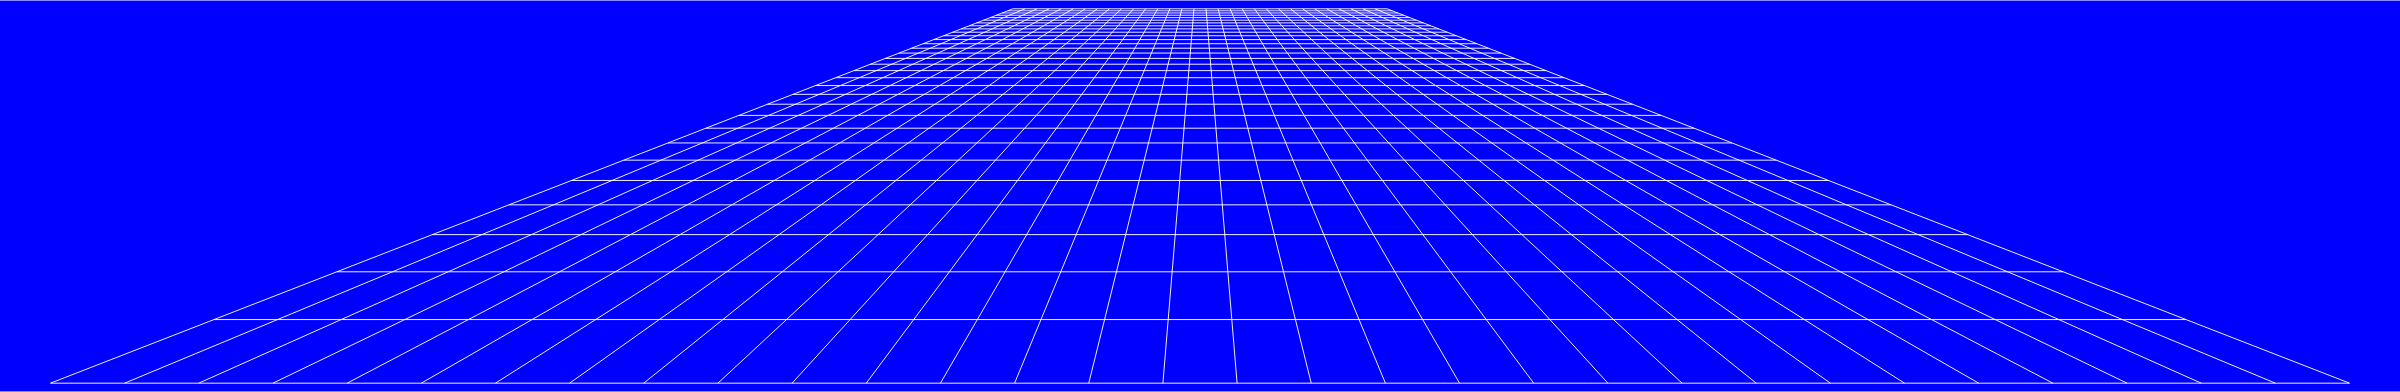 Perspective Grid Flat Blue by GDJ